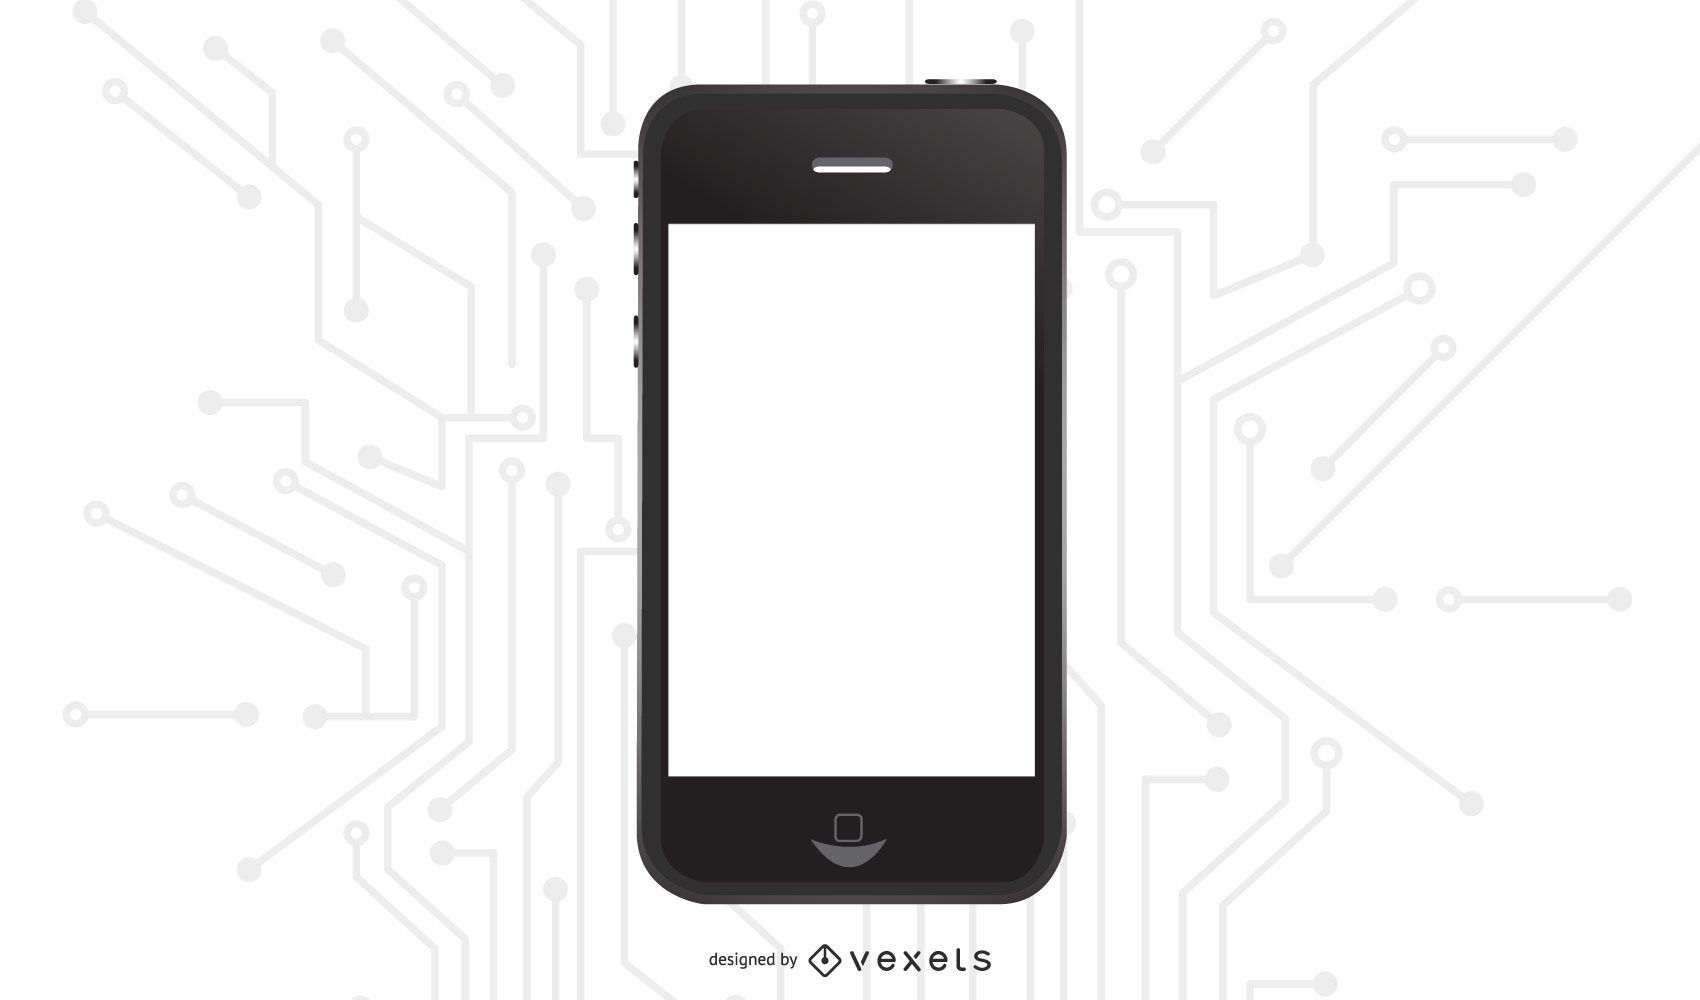 Glossy Black iPhone with Blank Display